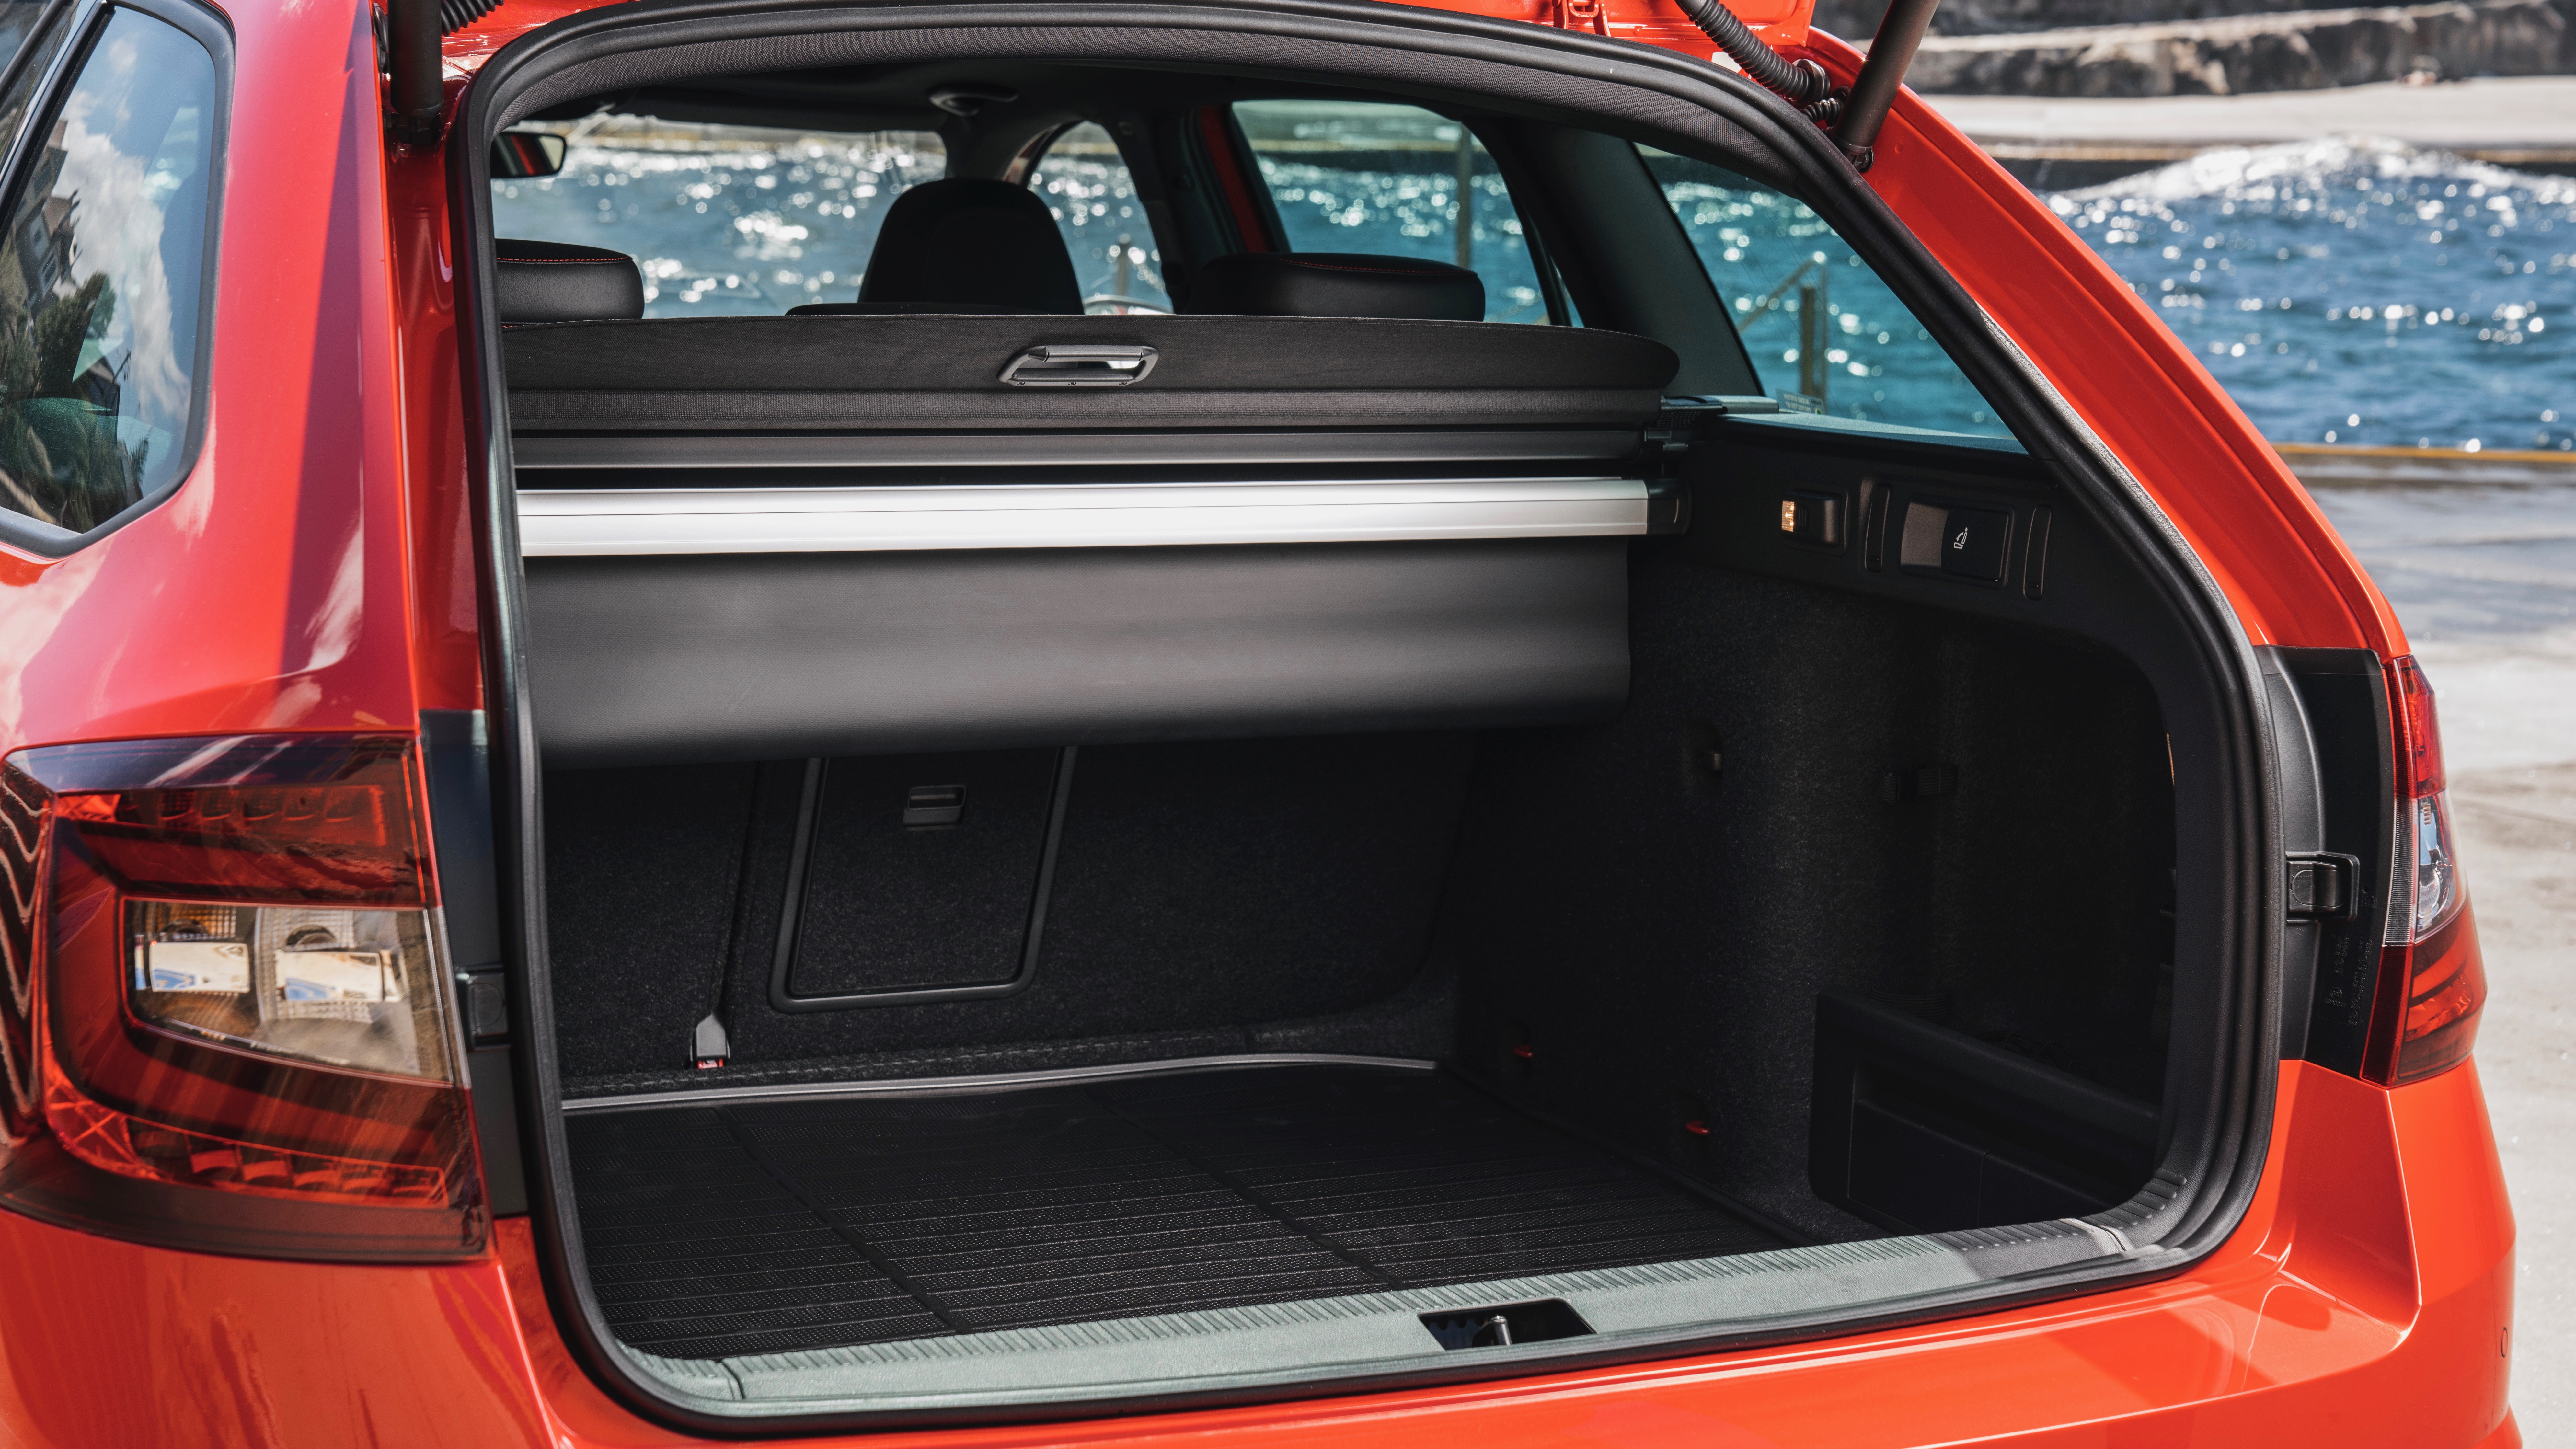 2018 Skoda Octavia RS245 wagon boot space